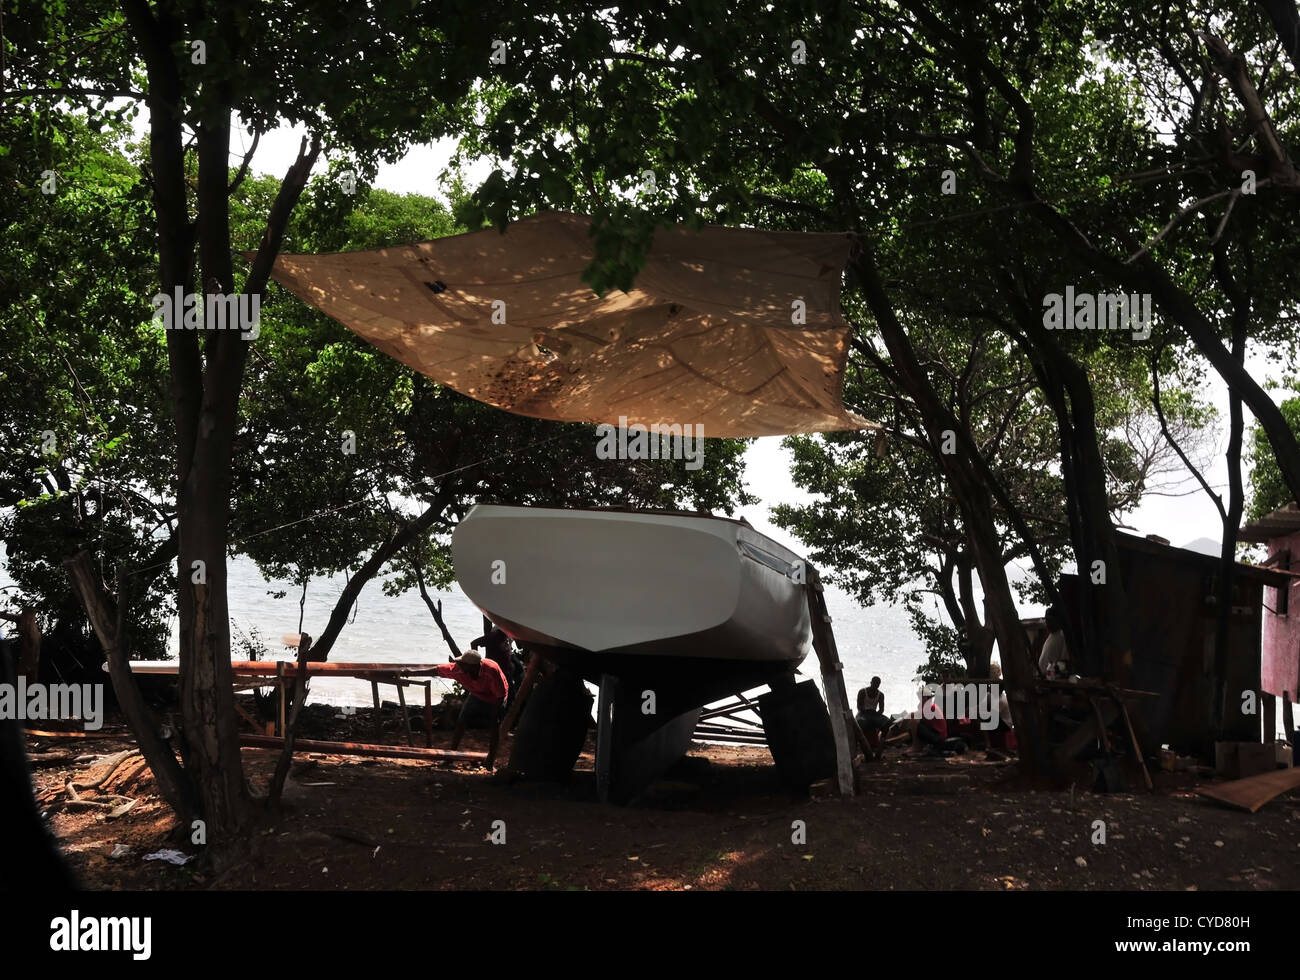 Green trees view brown canopy shade over white yacht on stocks in coastal boat-building yard Windward Carriacou West Indies & Green trees view brown canopy shade over white yacht on stocks in ...